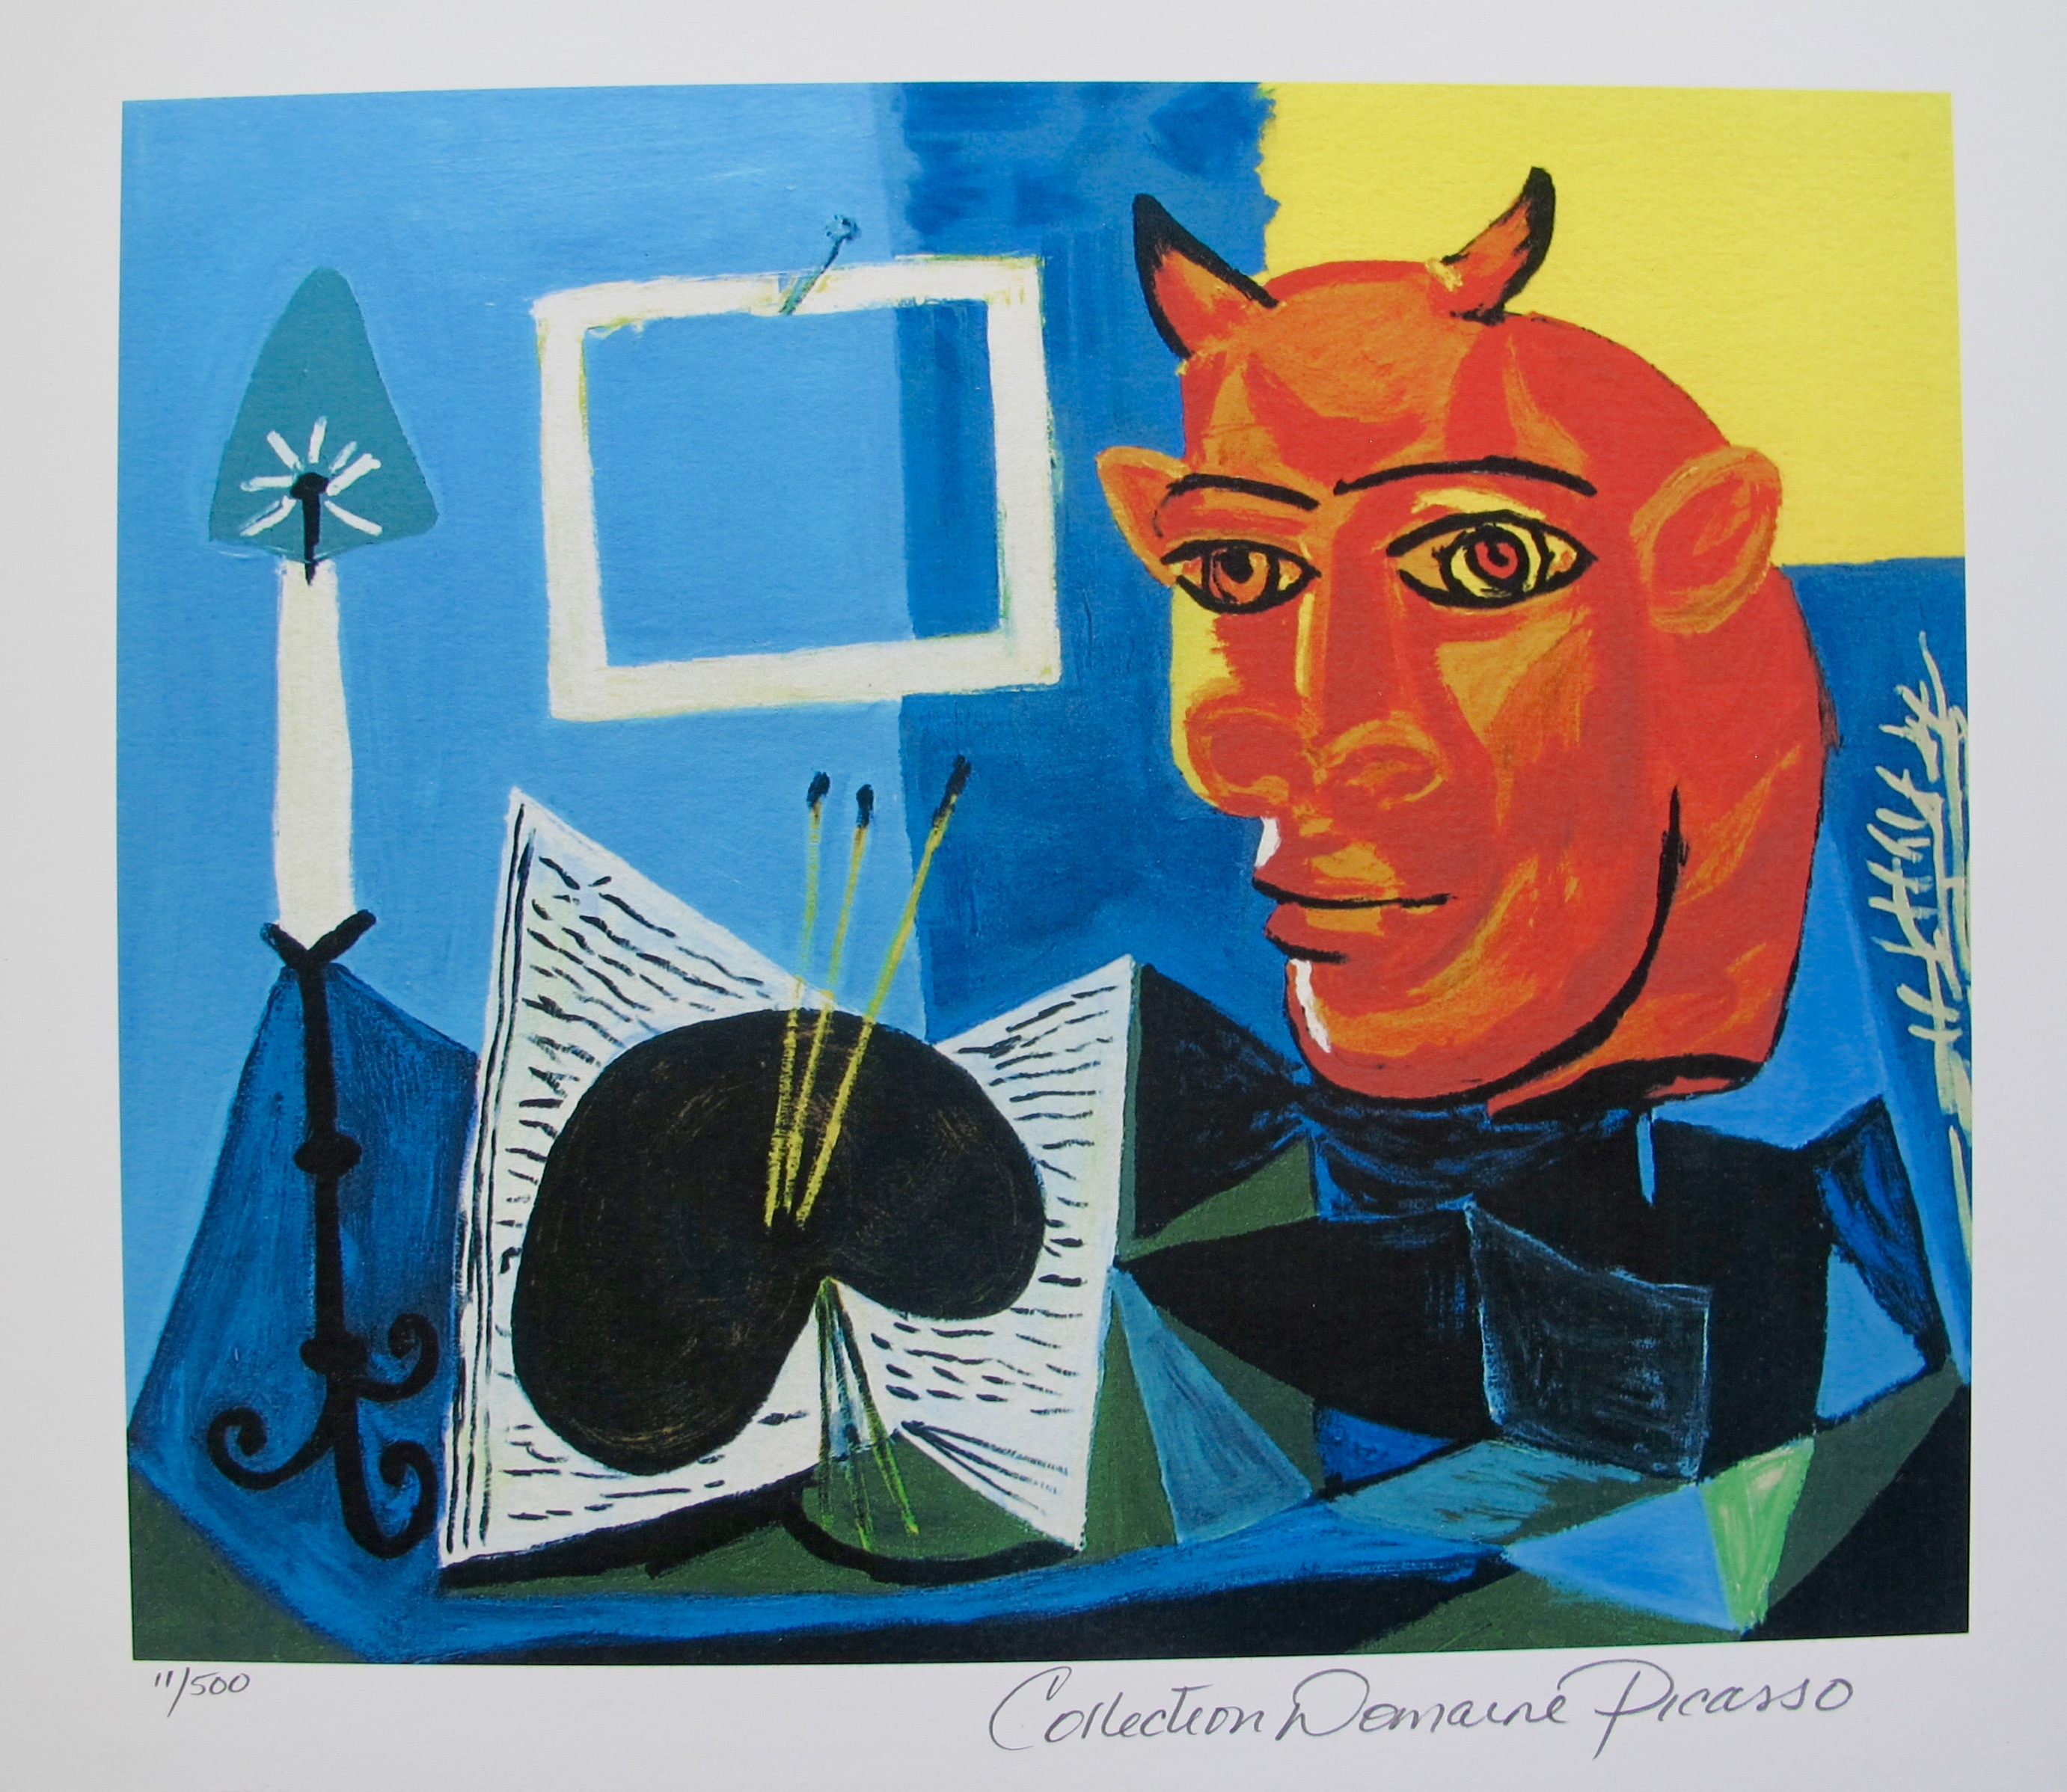 Pablo Picasso STILL LIFE WITH RED HEADED MINOTAUR Estate Signed Limited Edition Giclee